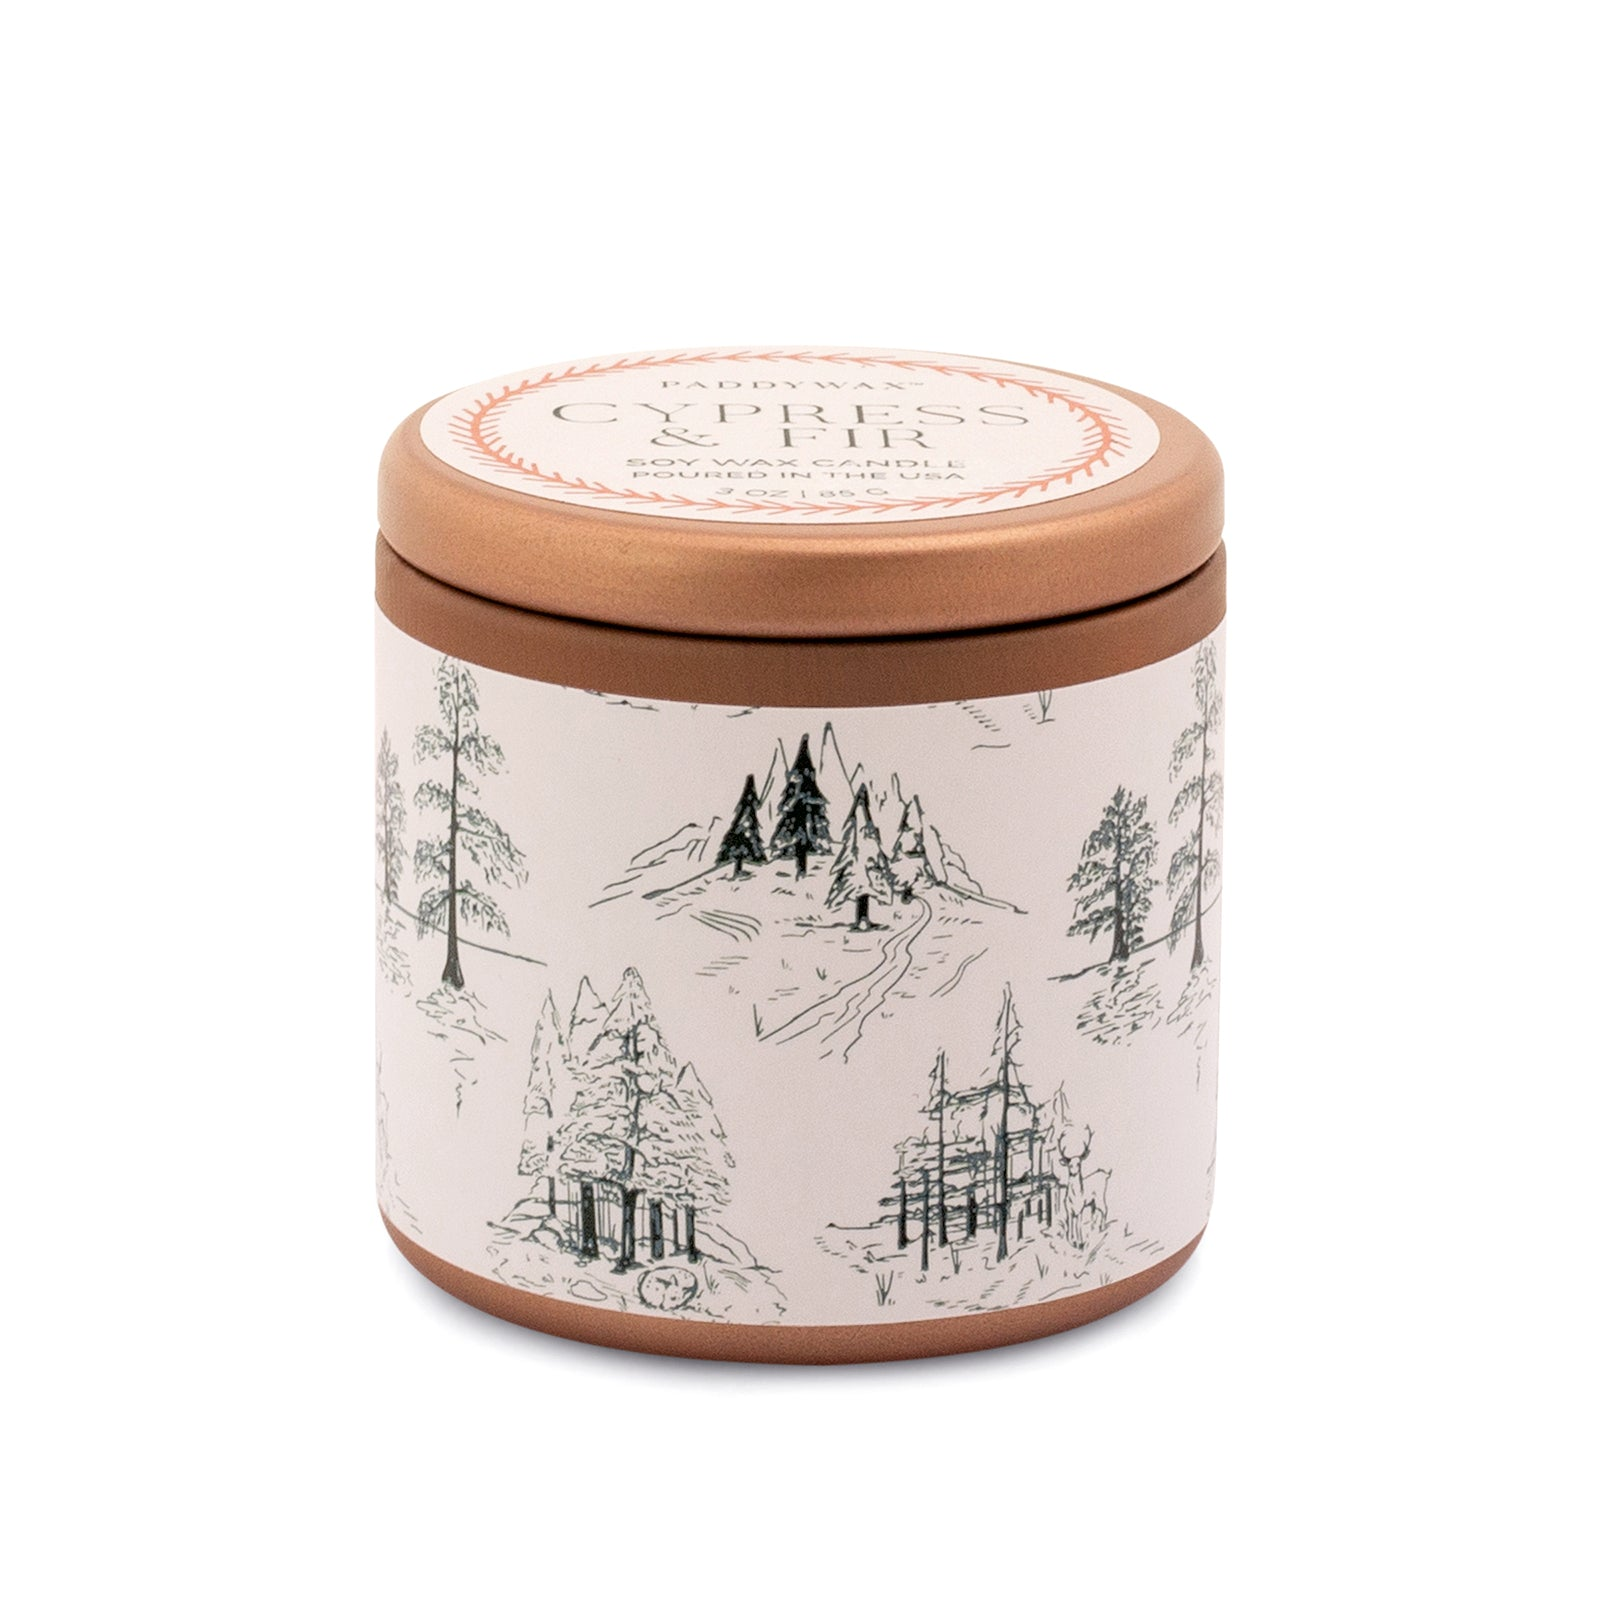 Cypress & Fir - Candle Tin with White Label - Heart of the Home PA